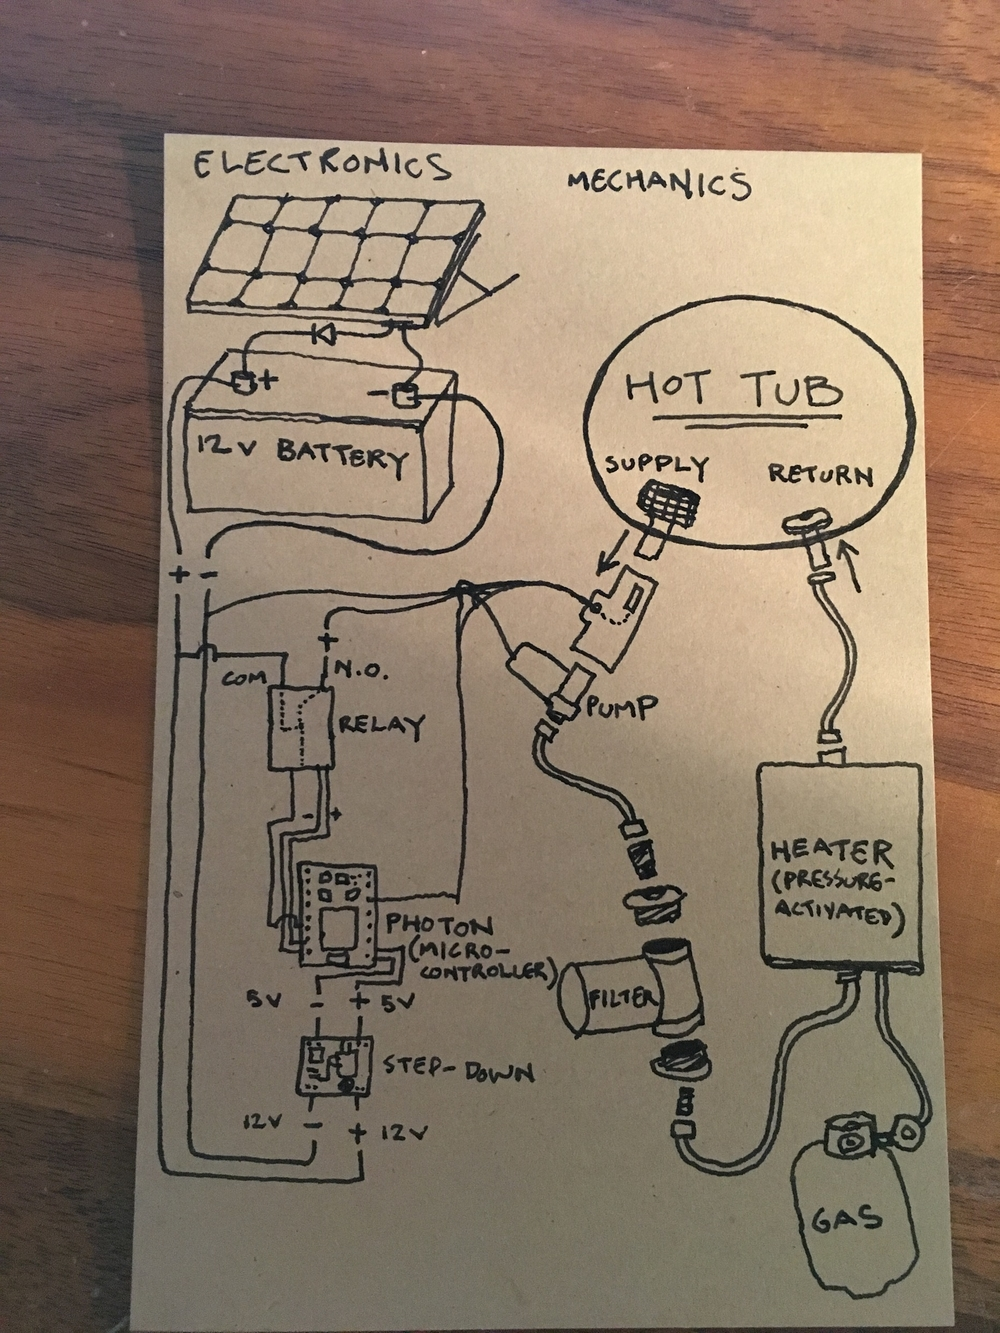 This diagram breaks down the systems used to run the hot tub, along electronic and mechanical lines.